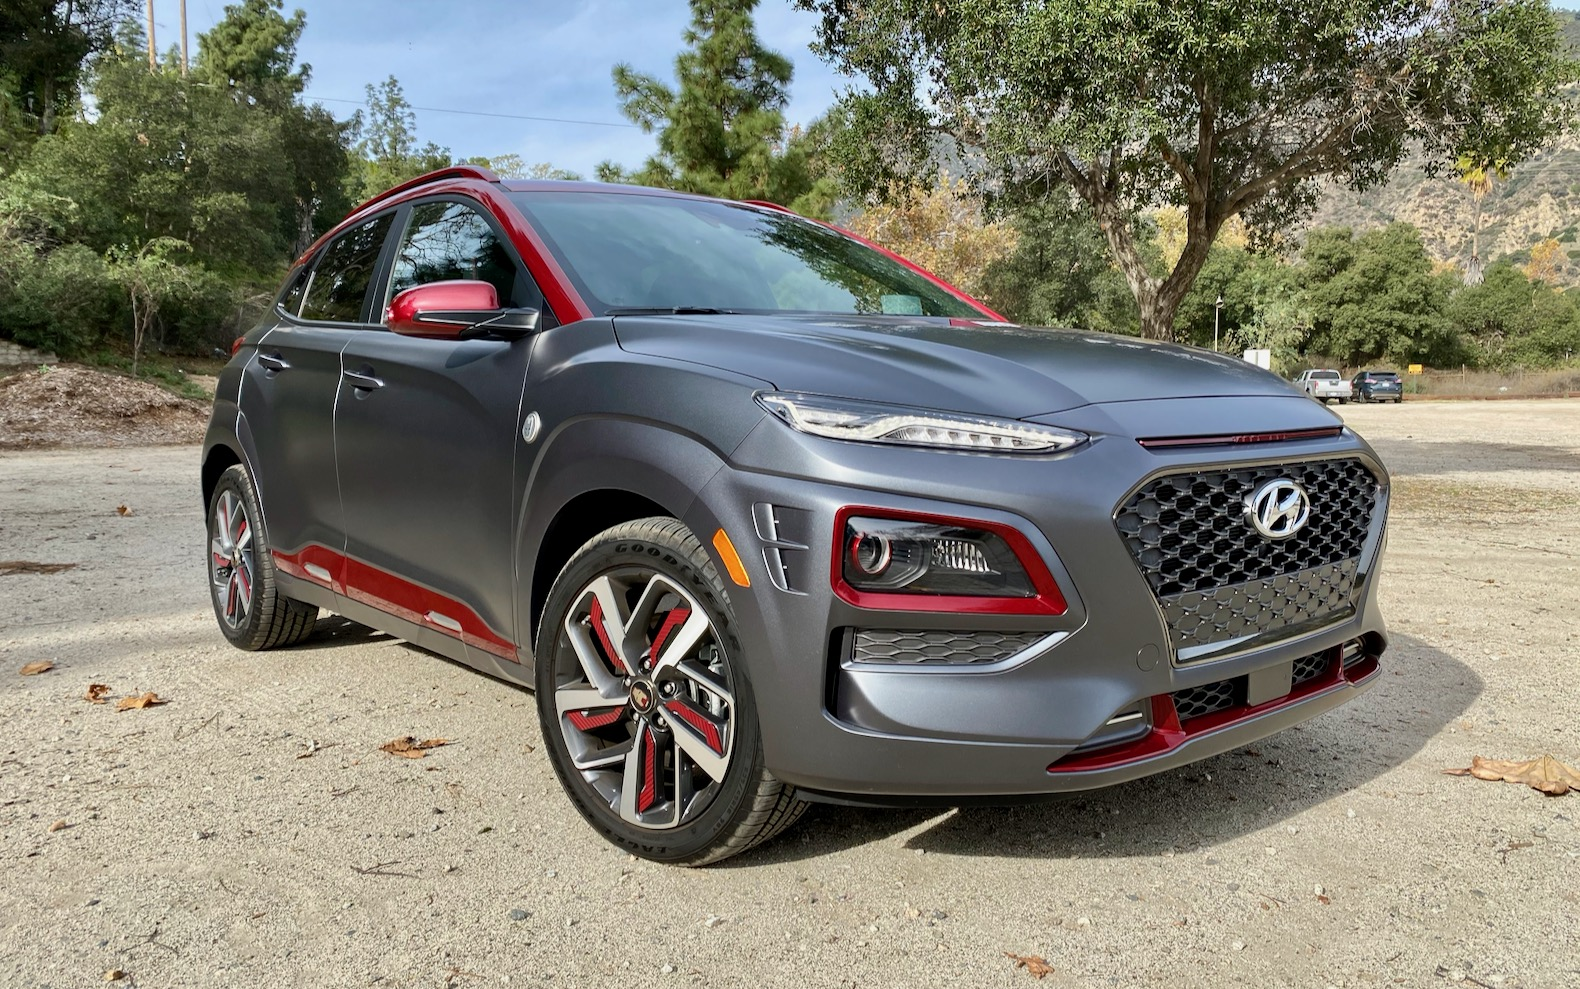 2019 Hyundai Kona Iron Man Edition Review Perfect For Marvel Fans The Torque Report